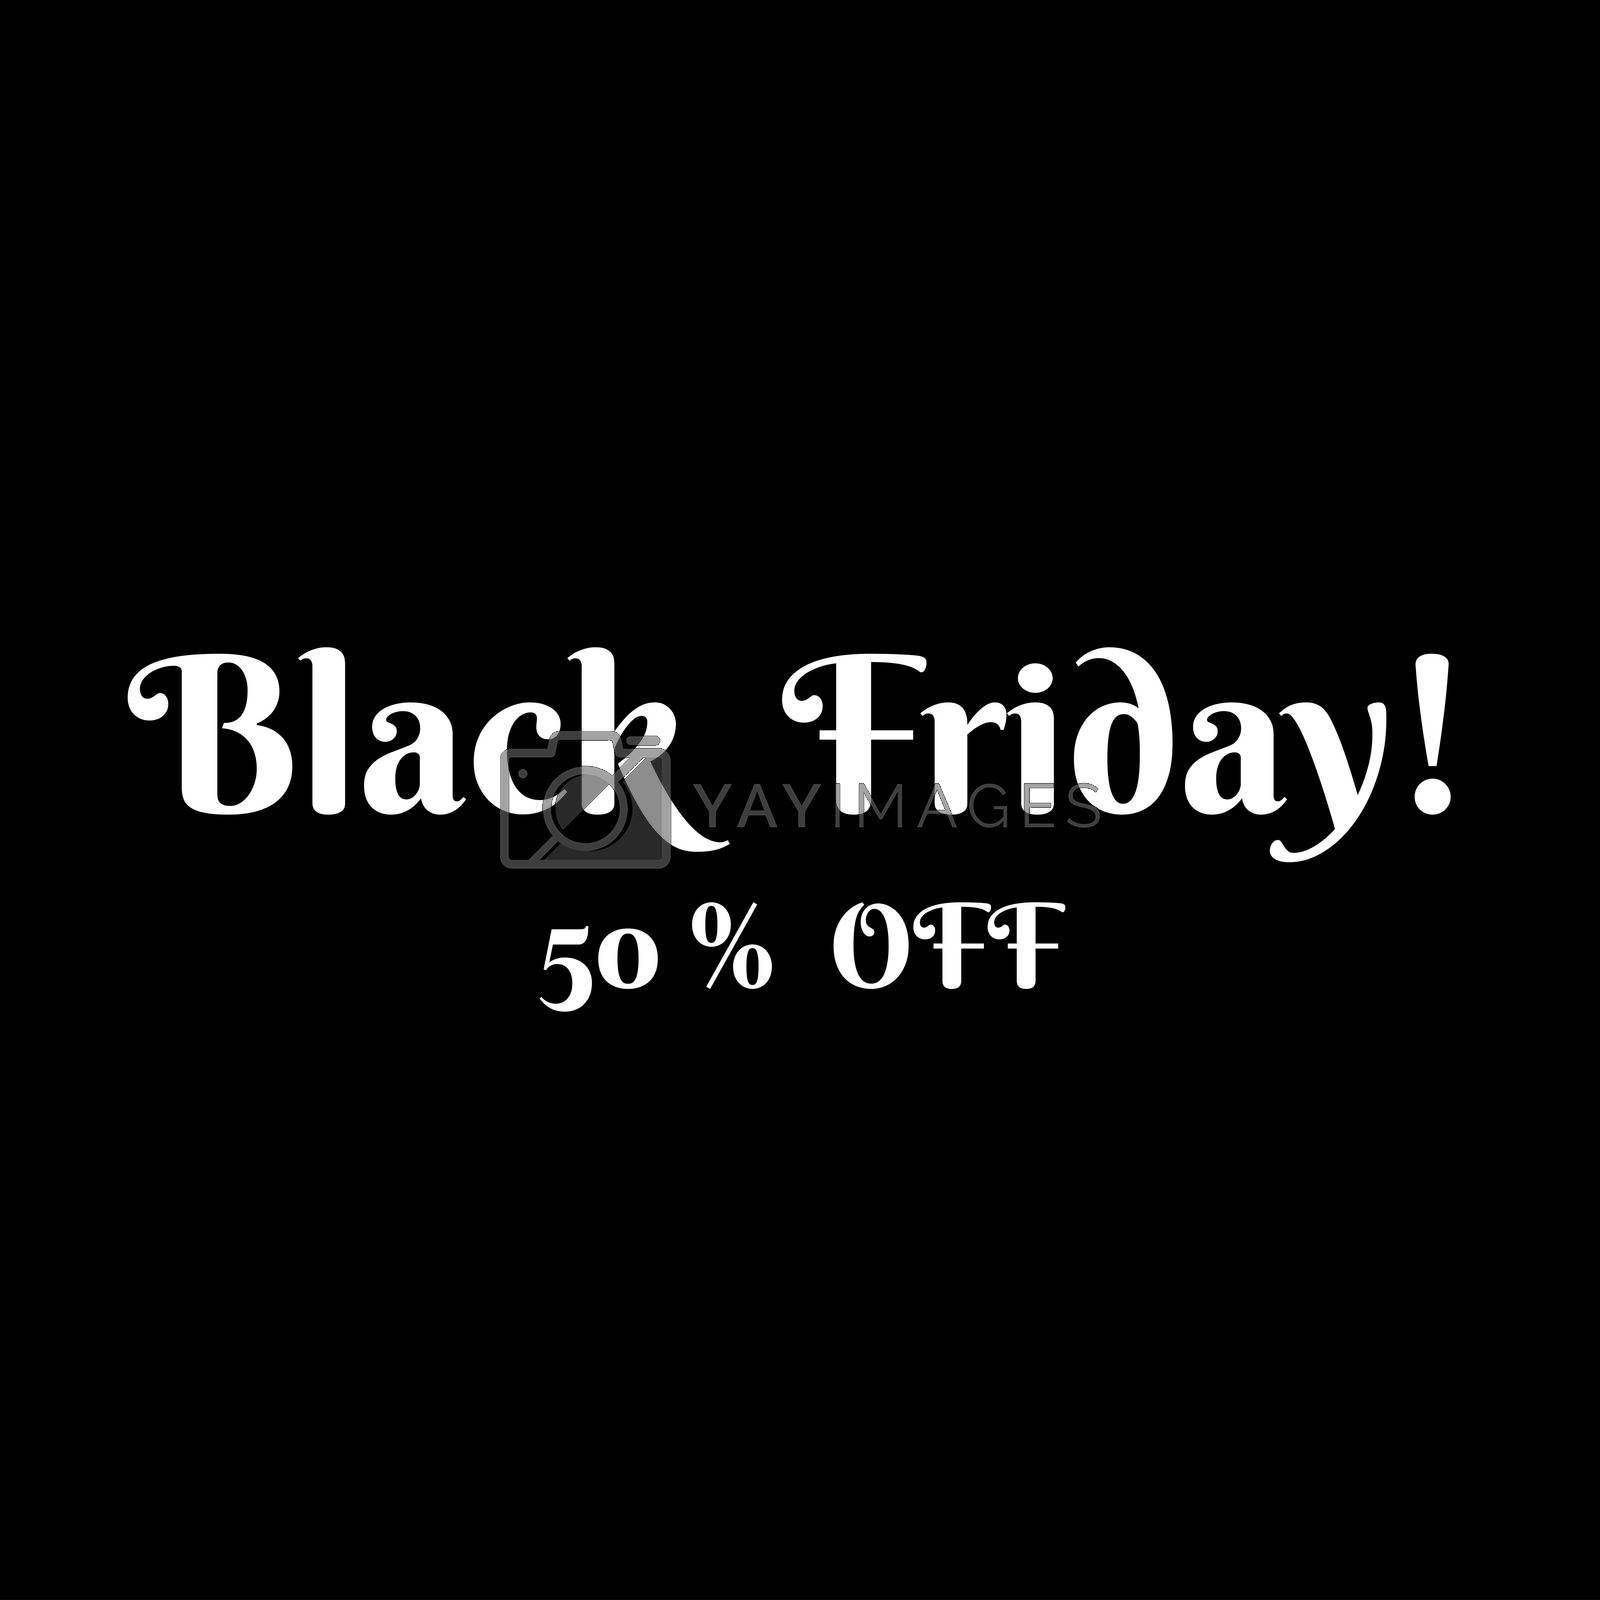 Black Friday! 50 % OFF. New art in our shop by Lordalea